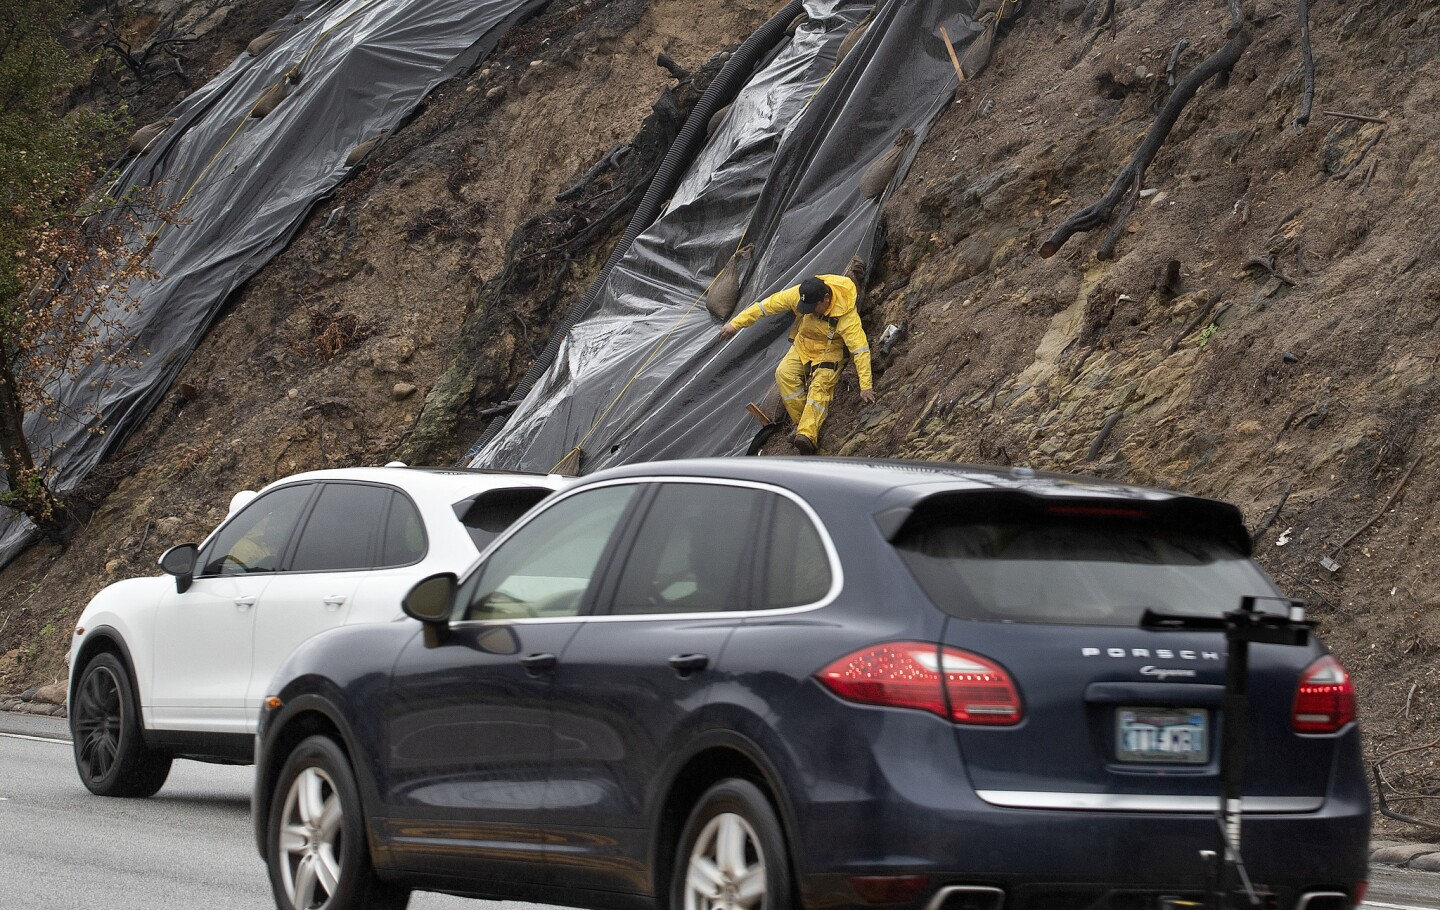 Powerful storms move through Southern California